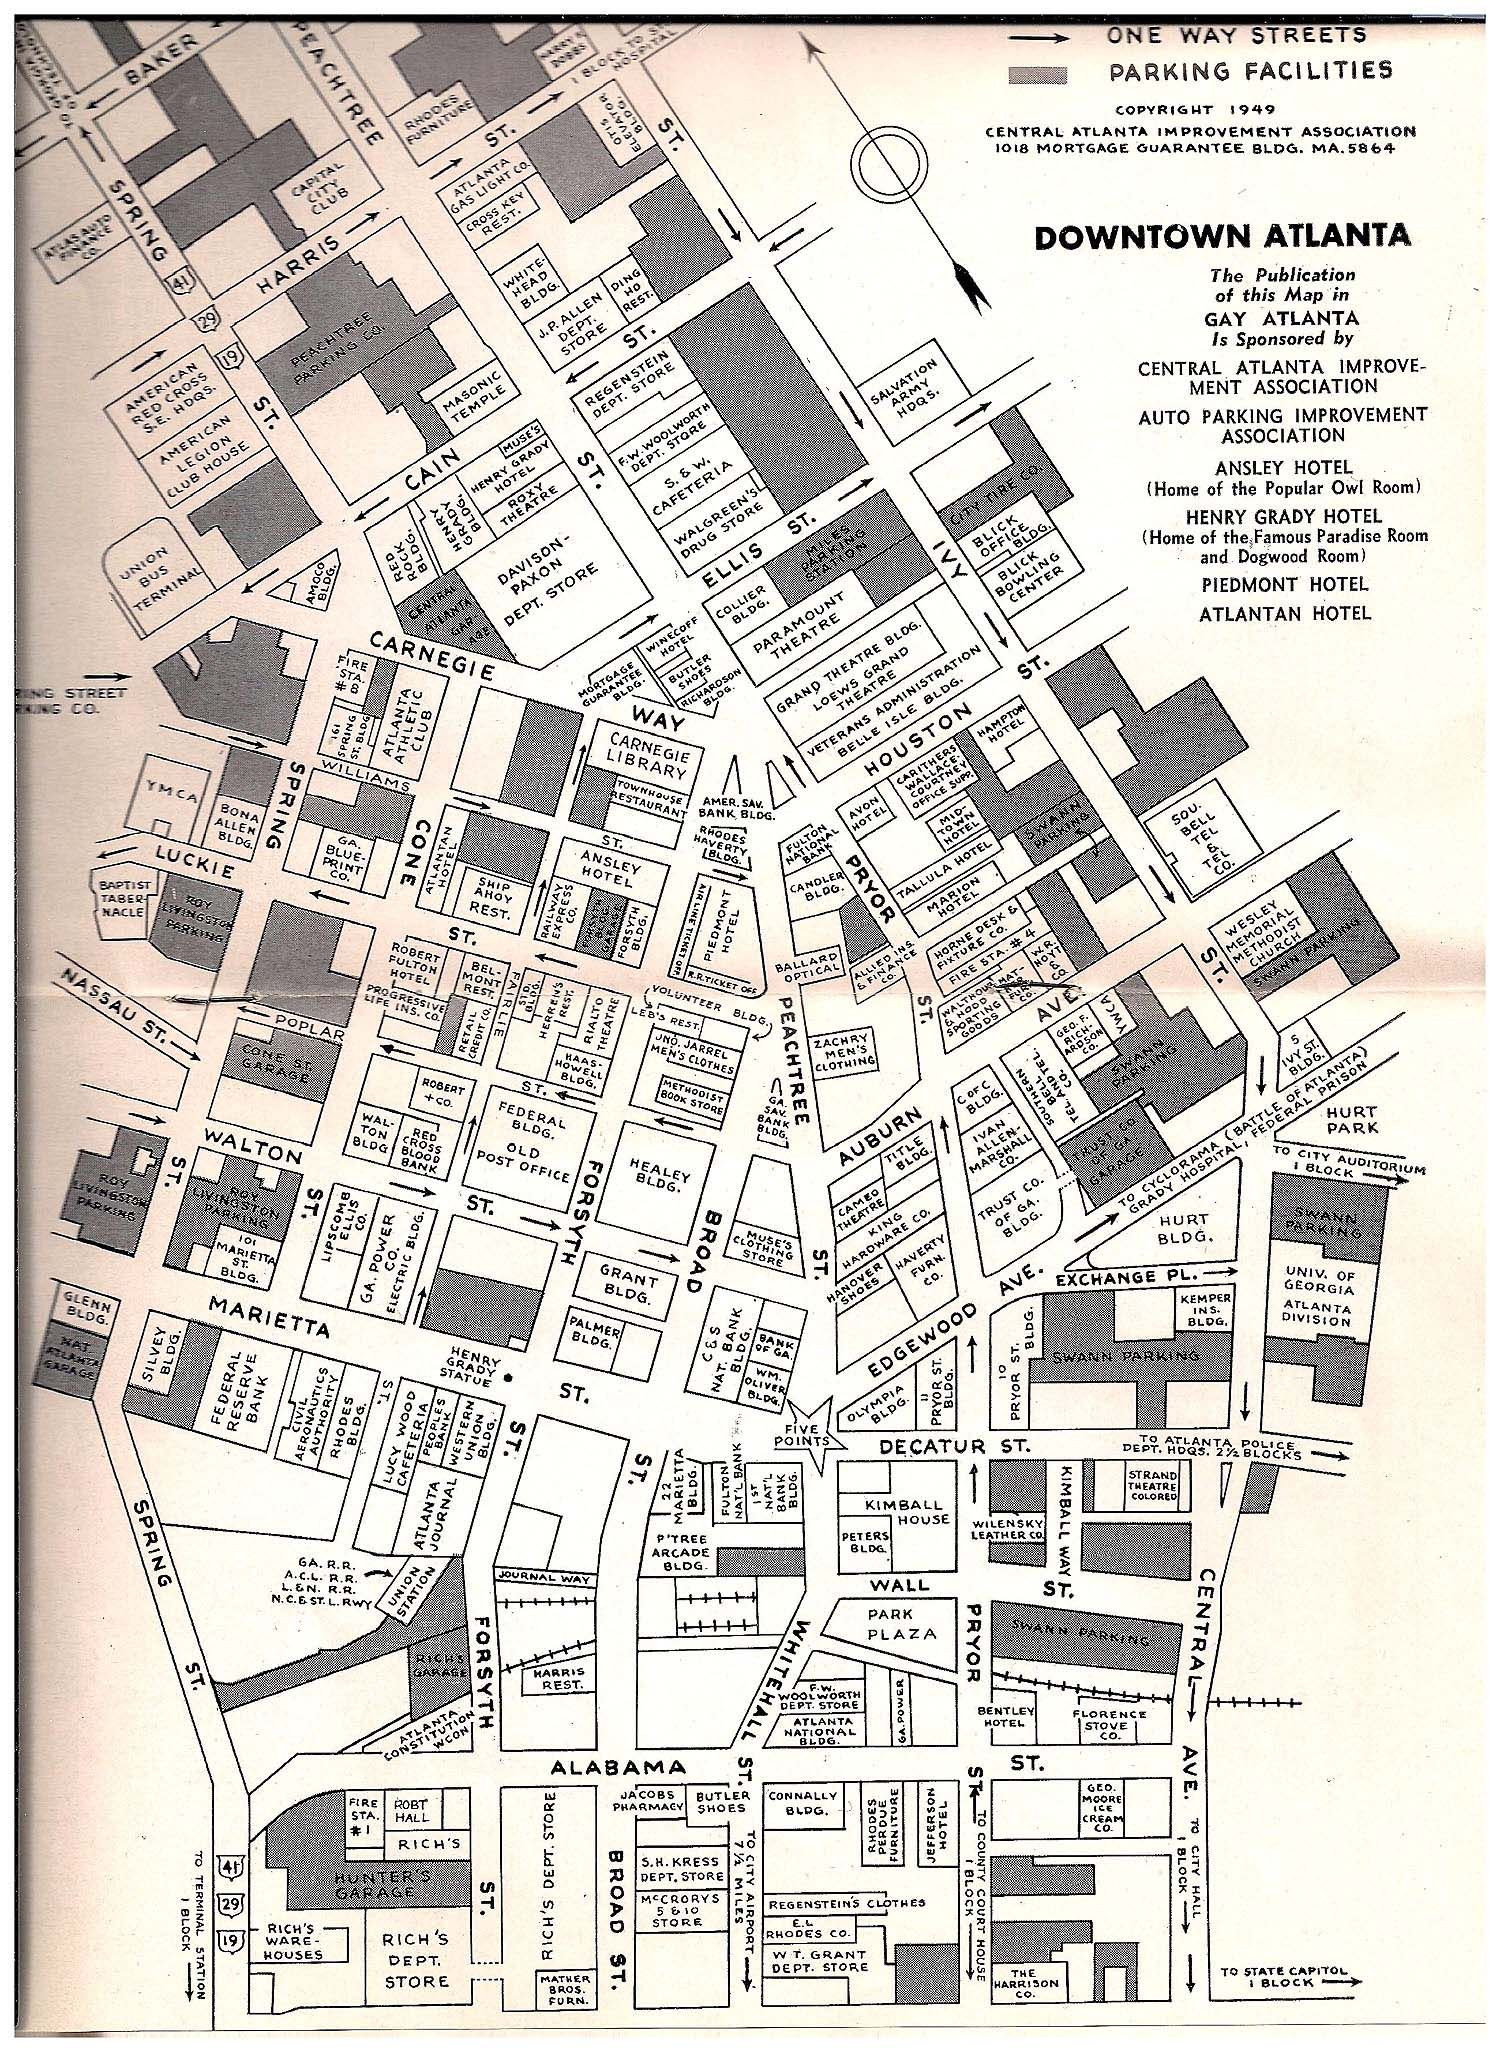 Seen Here Is A 1949 Map Of Downtown Atlanta Taken From The Pages Of